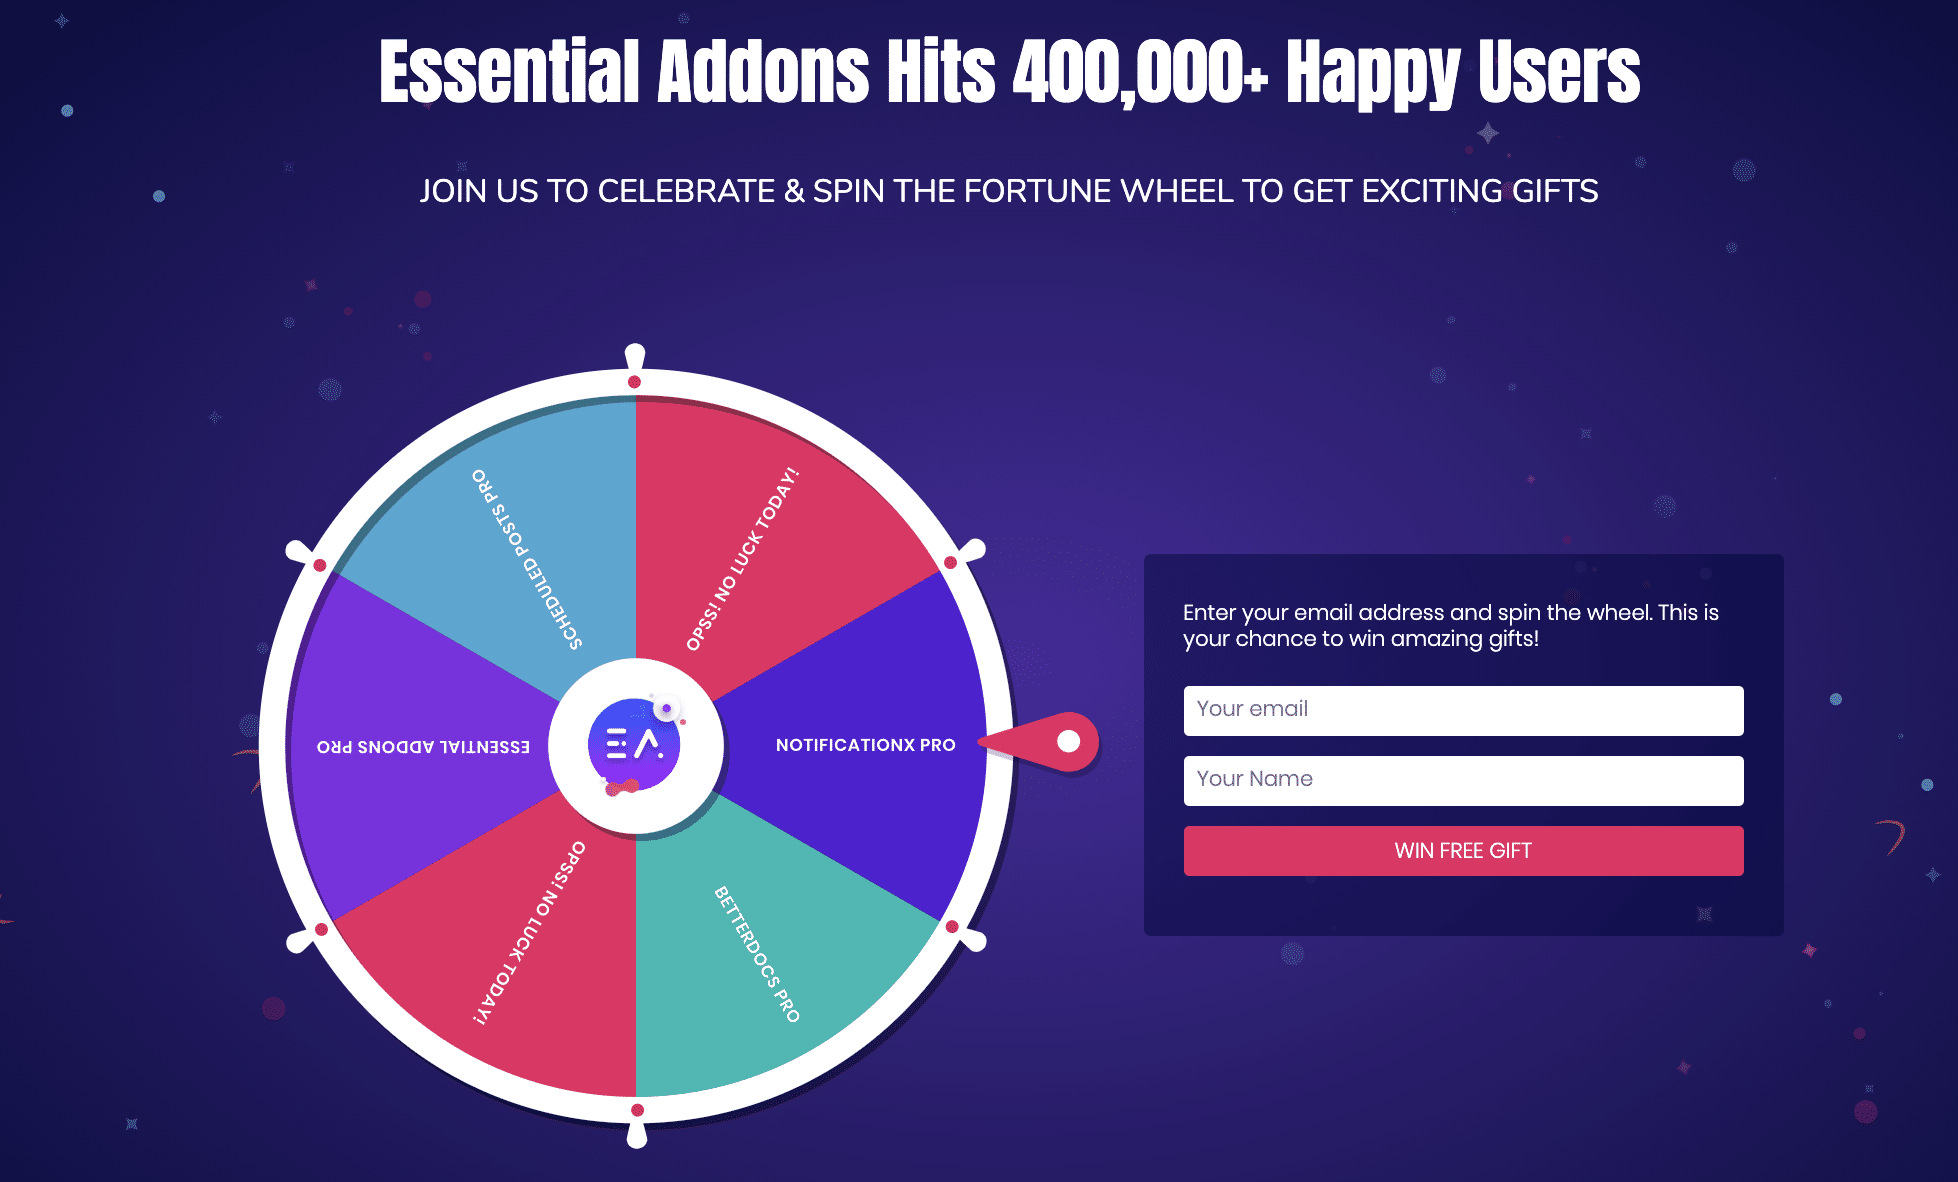 Most Popular Elementor Addons Library: Essential Addons Hits 400,000+ Active Users 9